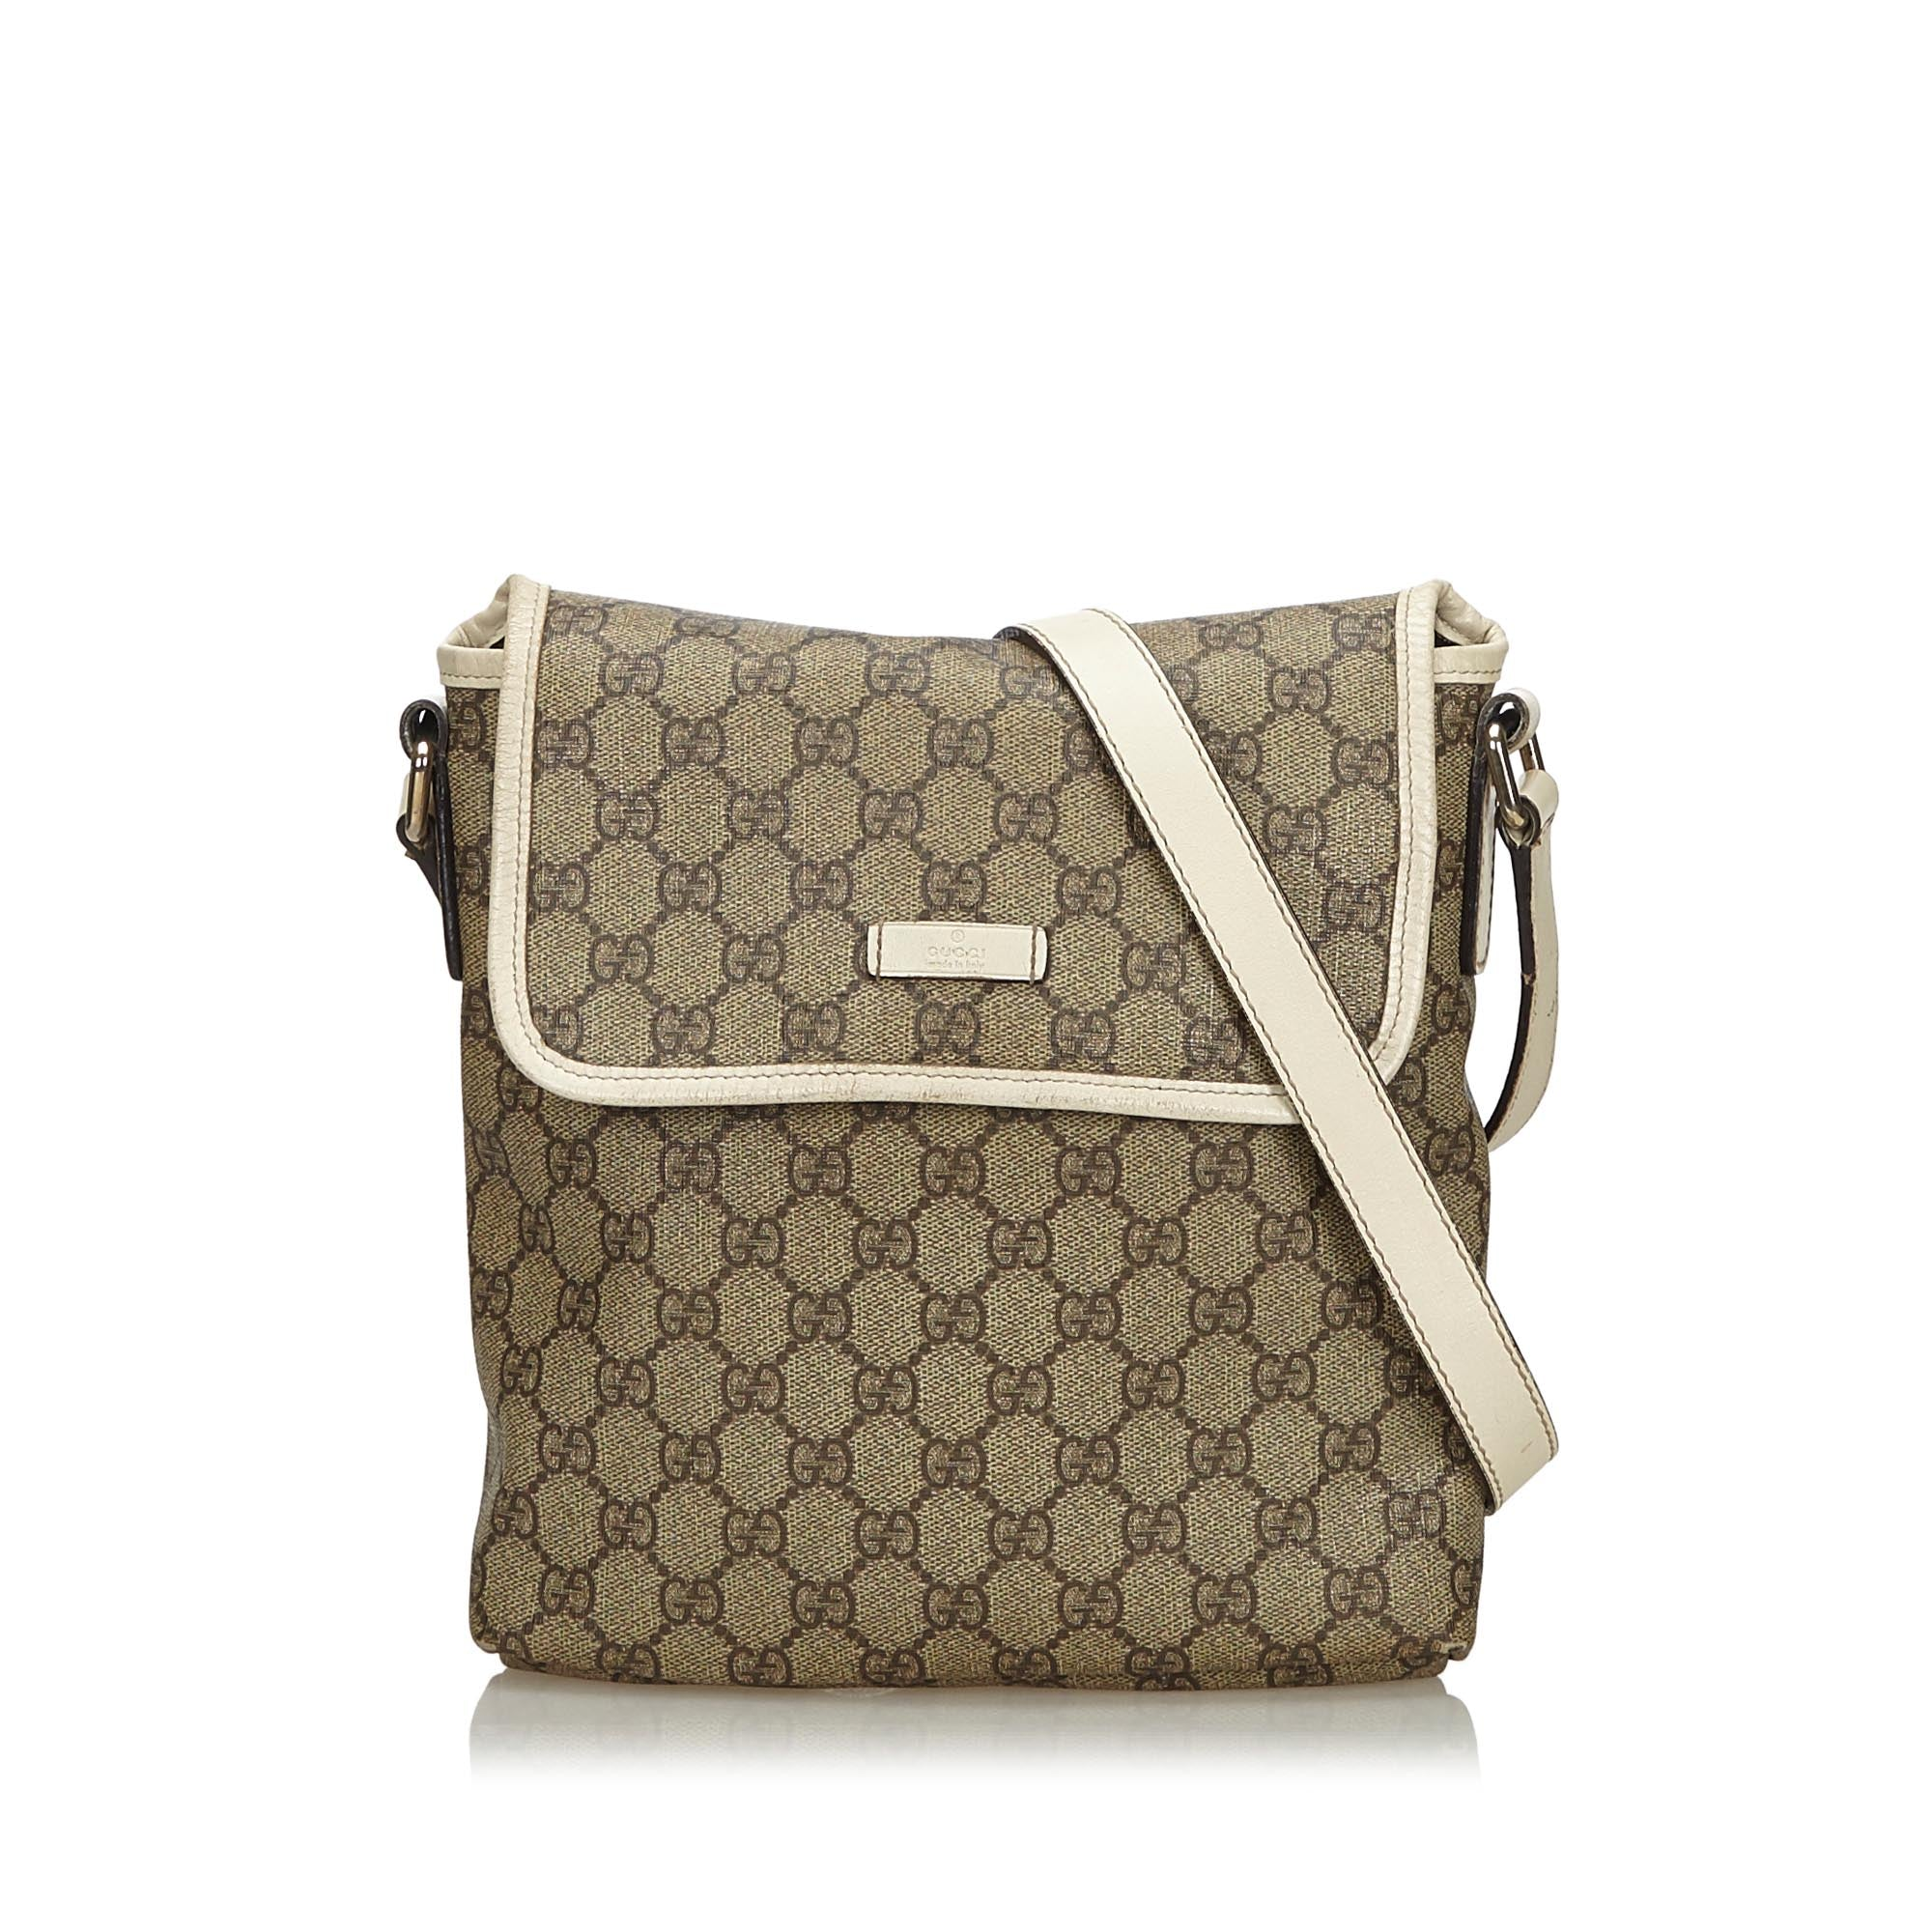 Gucci Brown GG Supreme Coated Canvas Crossbody Bag